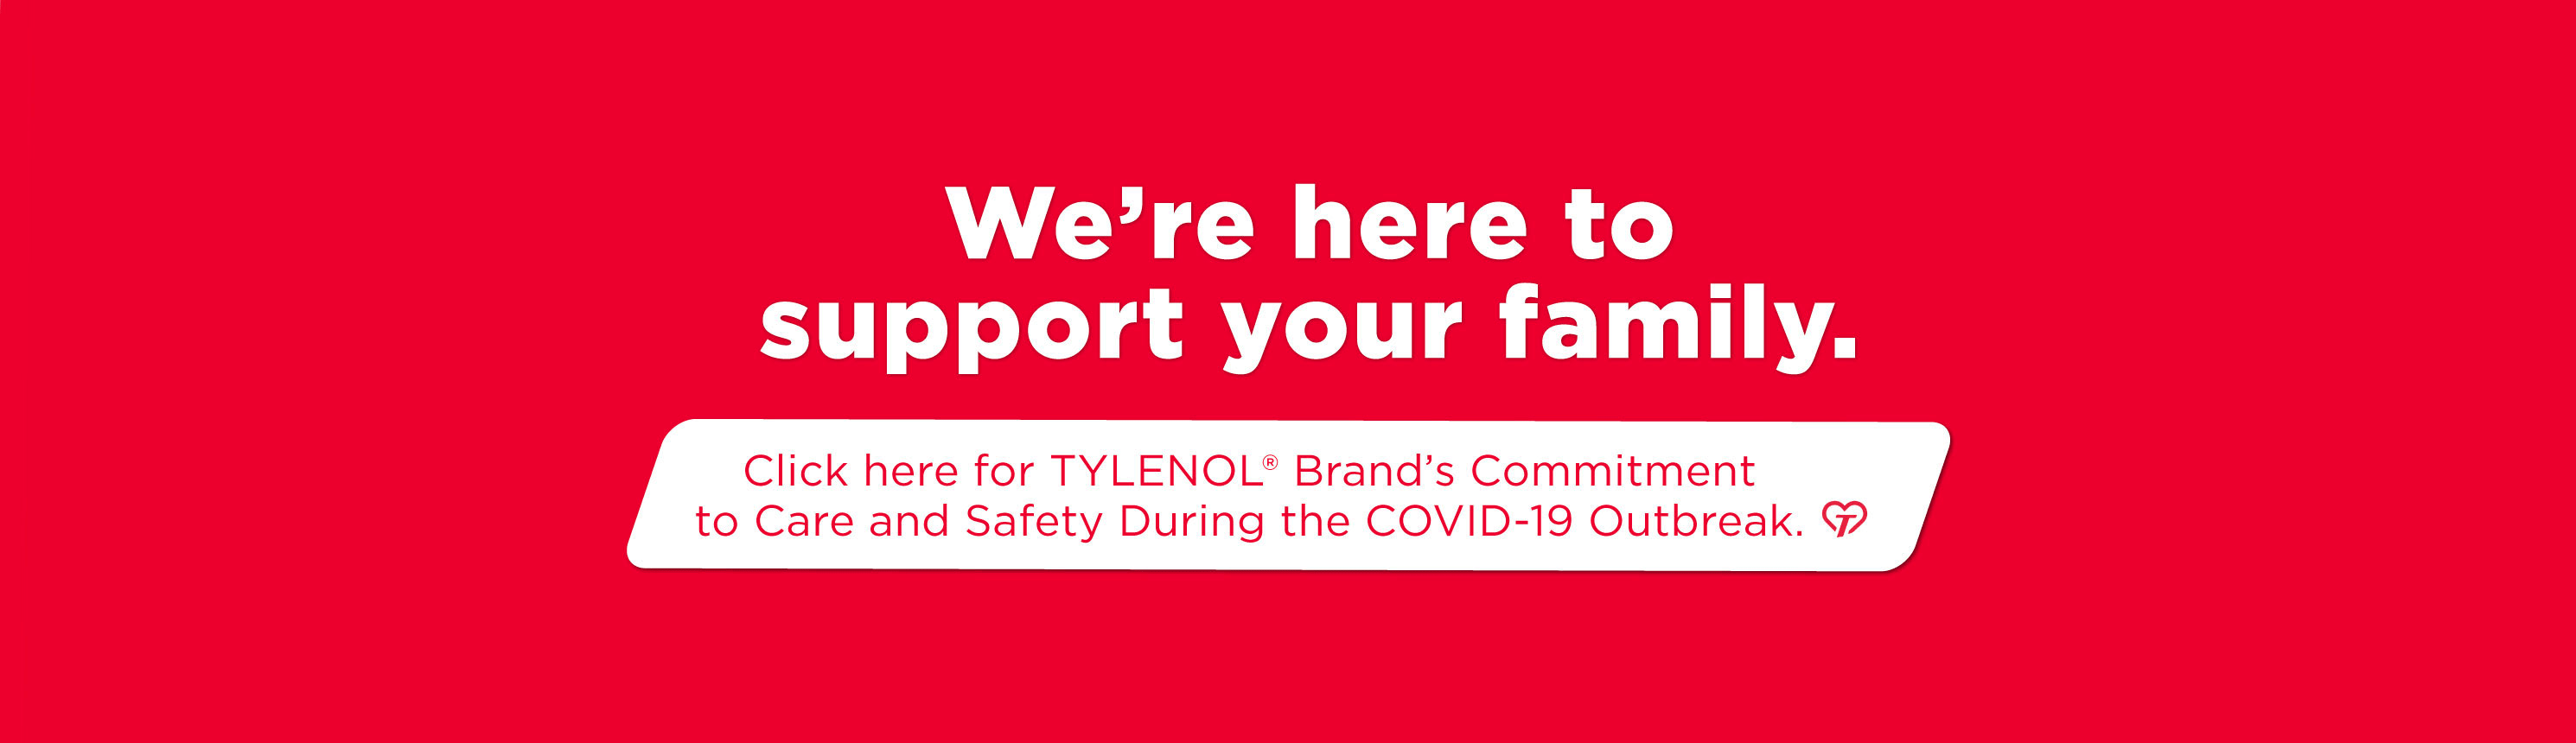 We're here to support your family. Click here for TYLENOL Brand's commitment to care and safety during the COVID-19 outbreak.